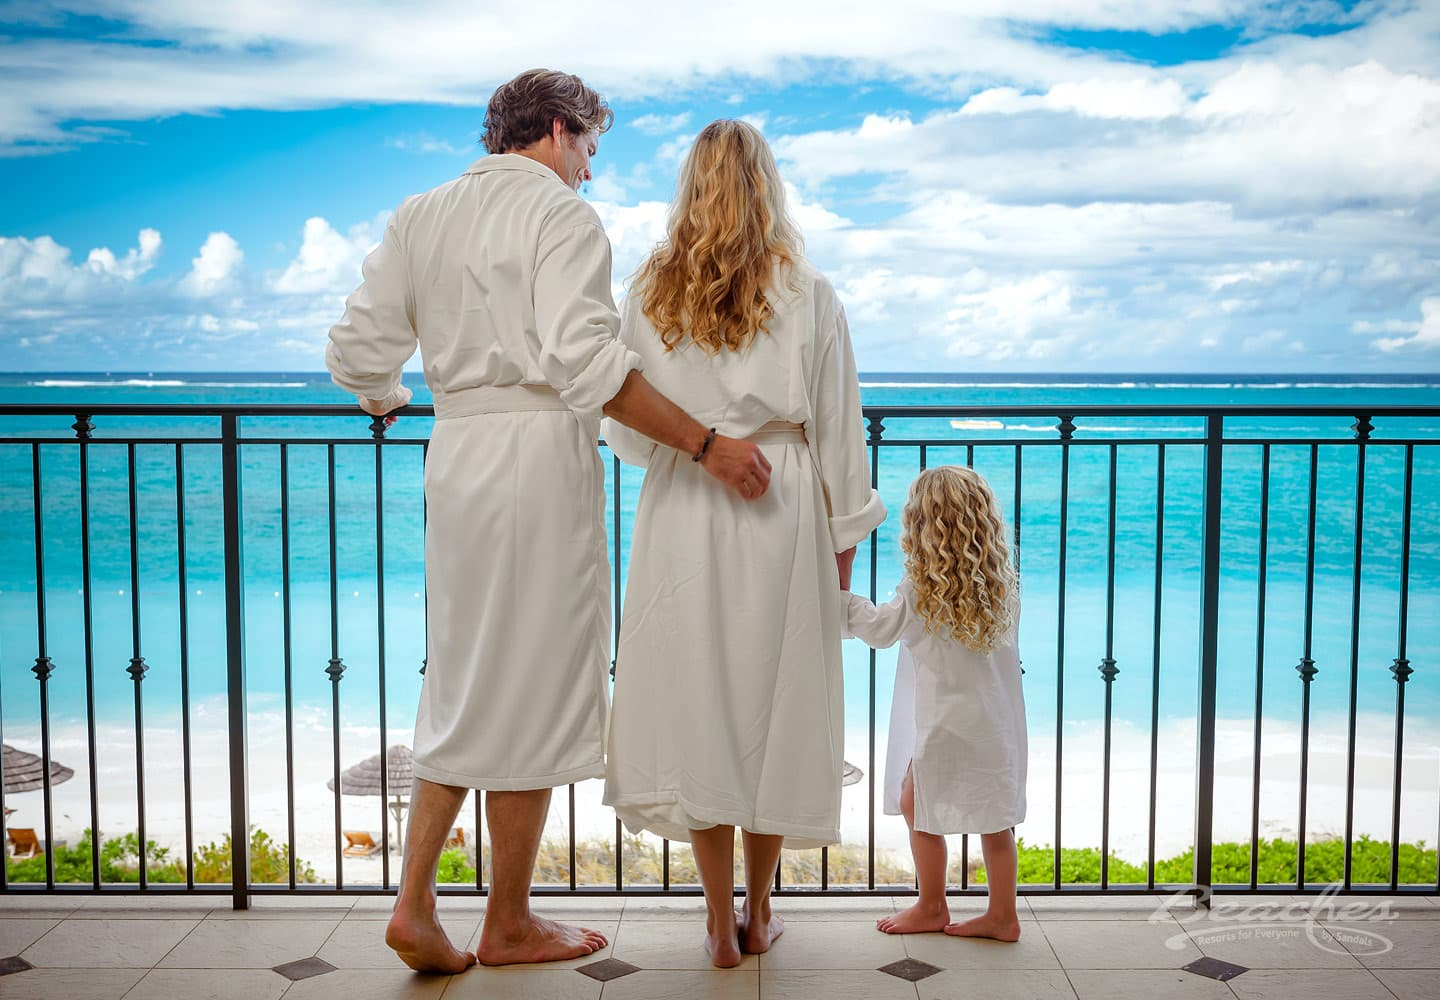 father, mother and child on balcony in morning robs, looking at the ocean, symbolizing the beauty and pure joy ob booking luxury all inclusive vacation packages